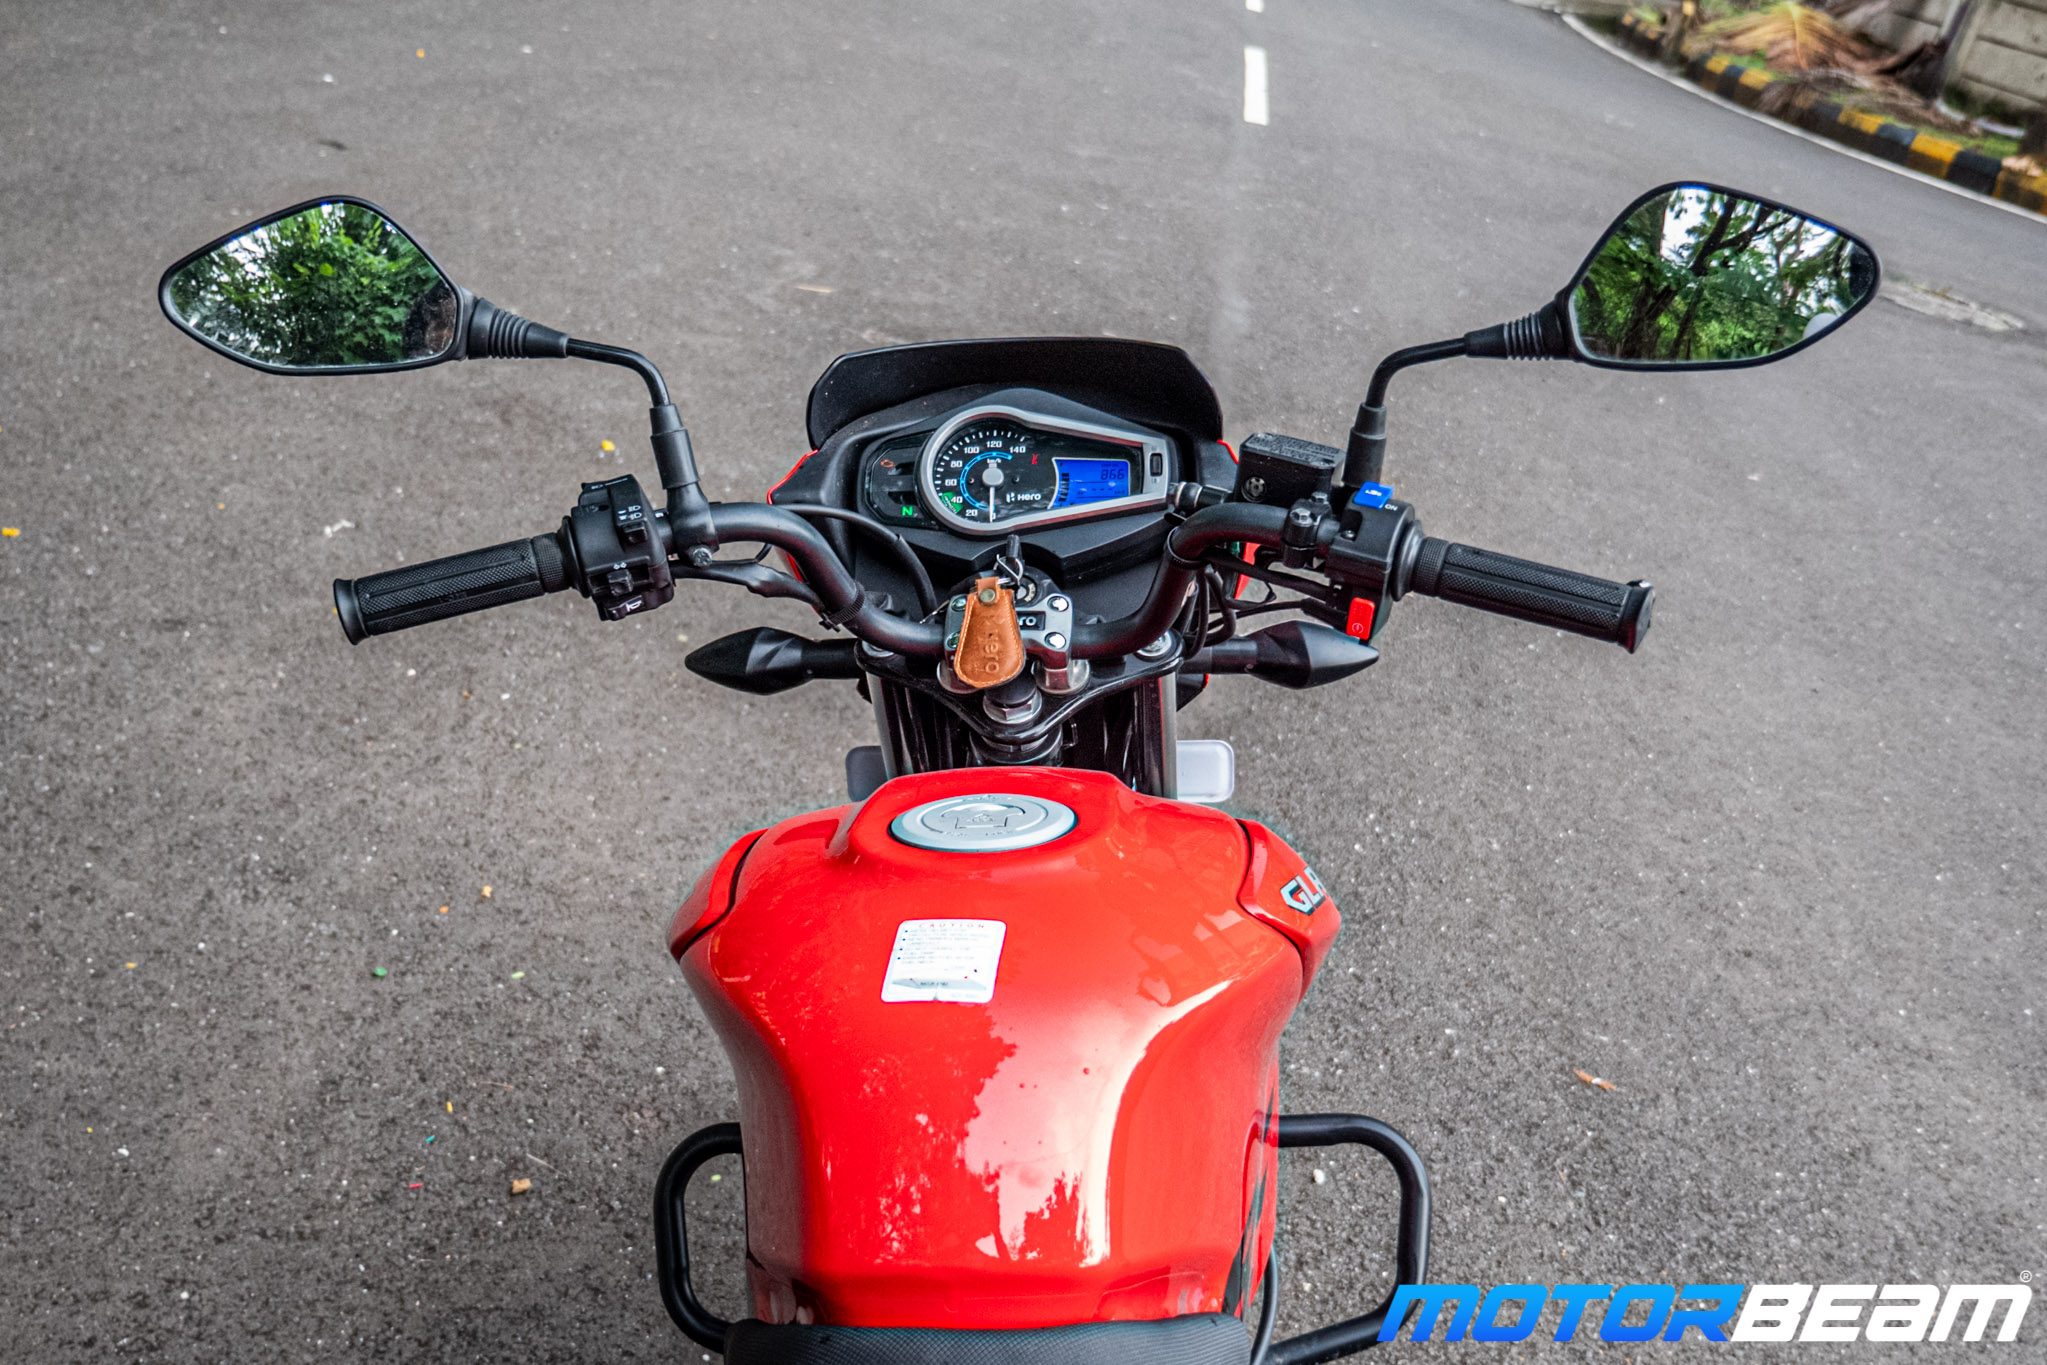 2020 Hero Glamour 125 Review 27